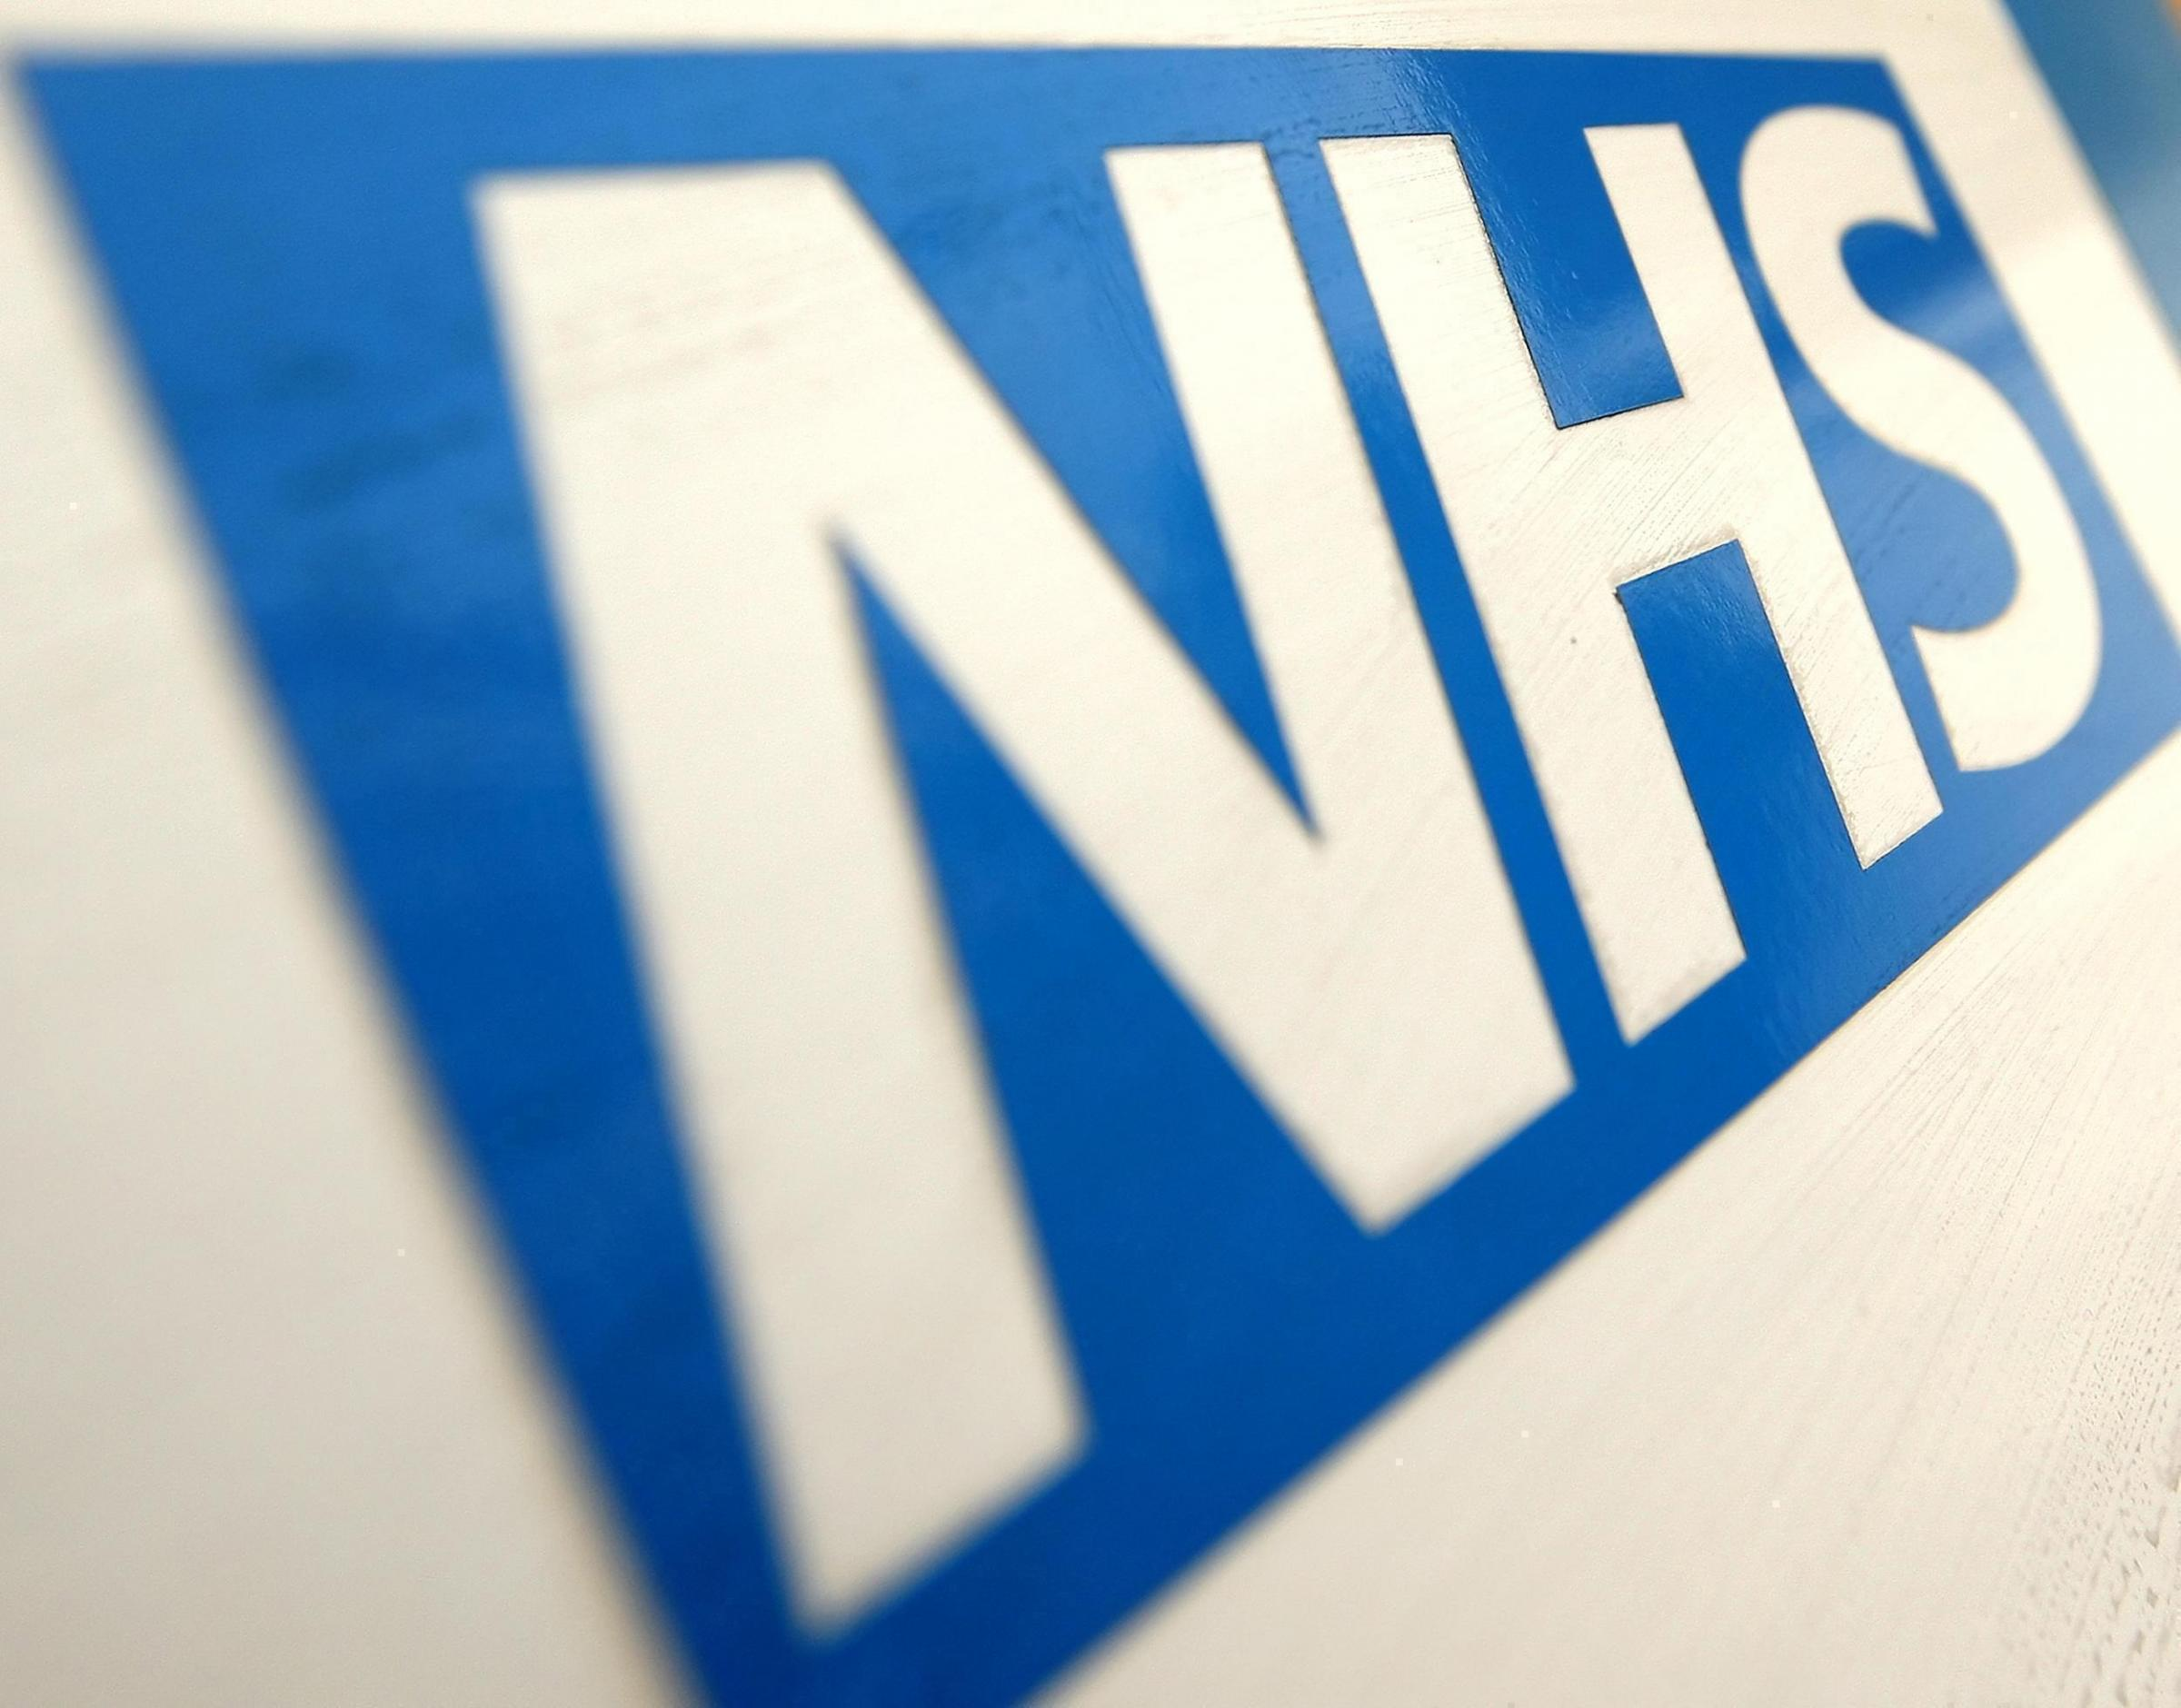 Worcestershire NHS backs clampdown on 'health tourism'